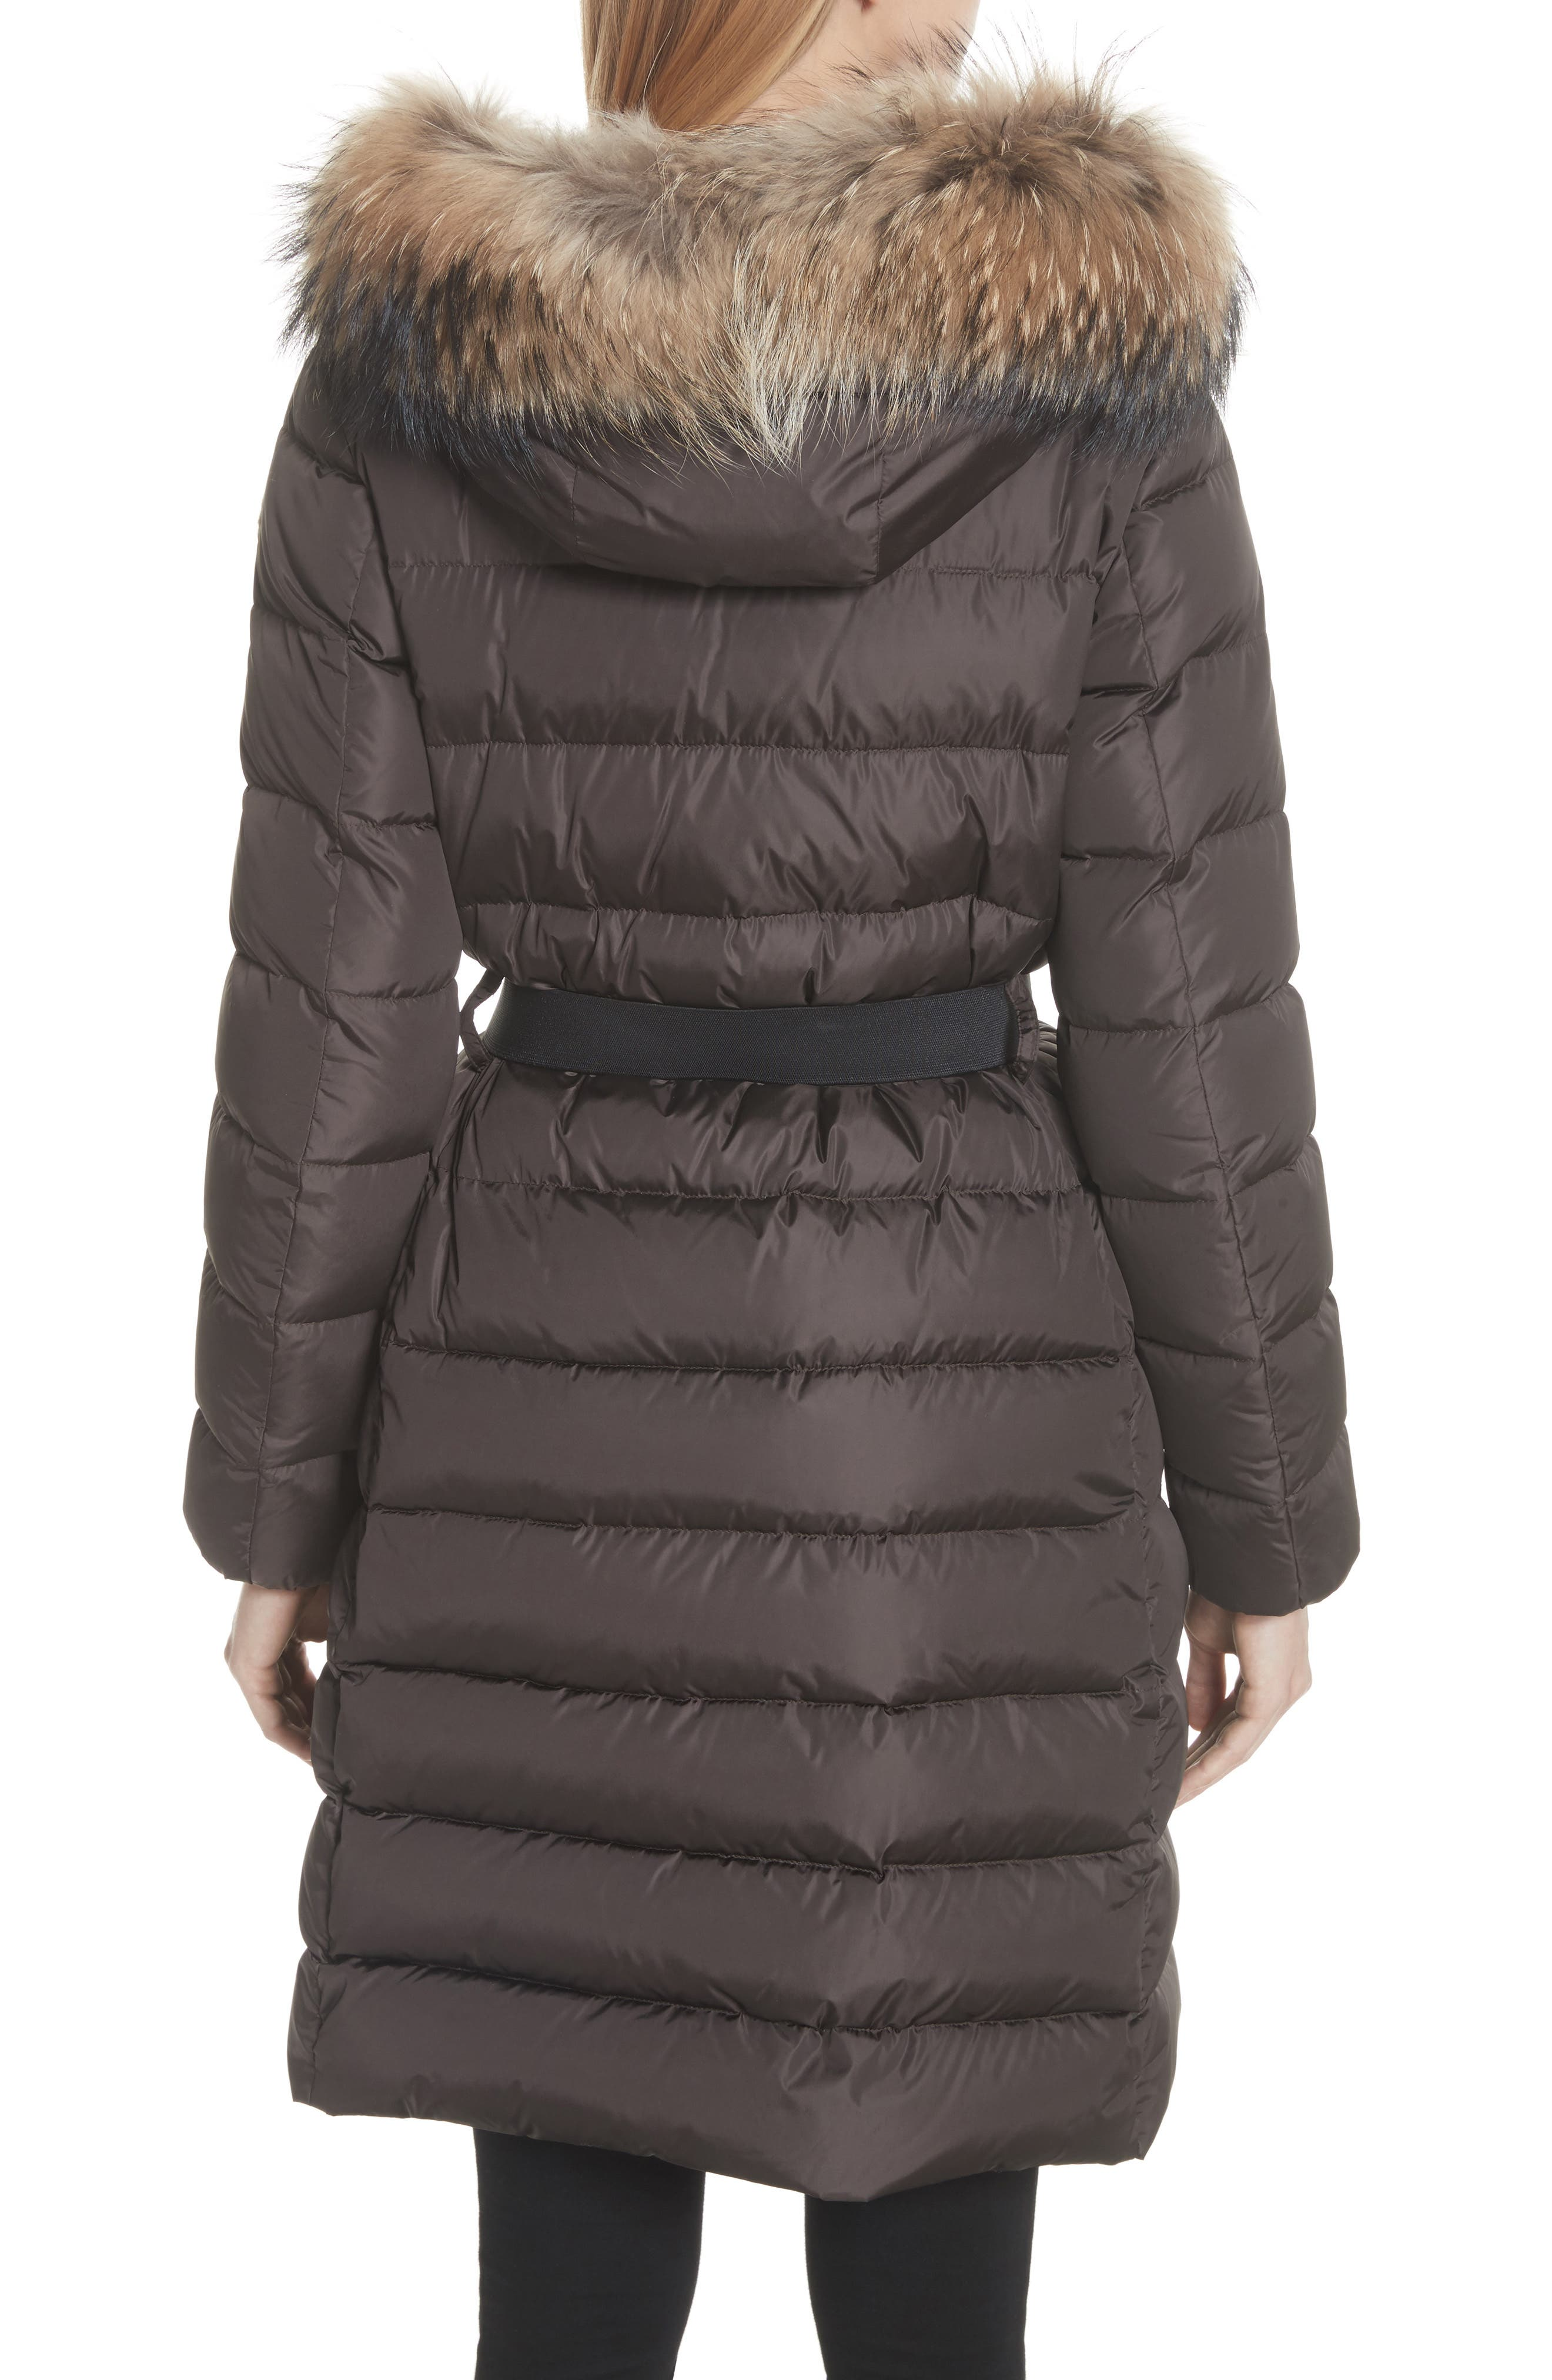 'Khloe' Water Resistant Nylon Down Puffer Parka with Removable Genuine Fox Fur Trim,                             Alternate thumbnail 6, color,                             Brown